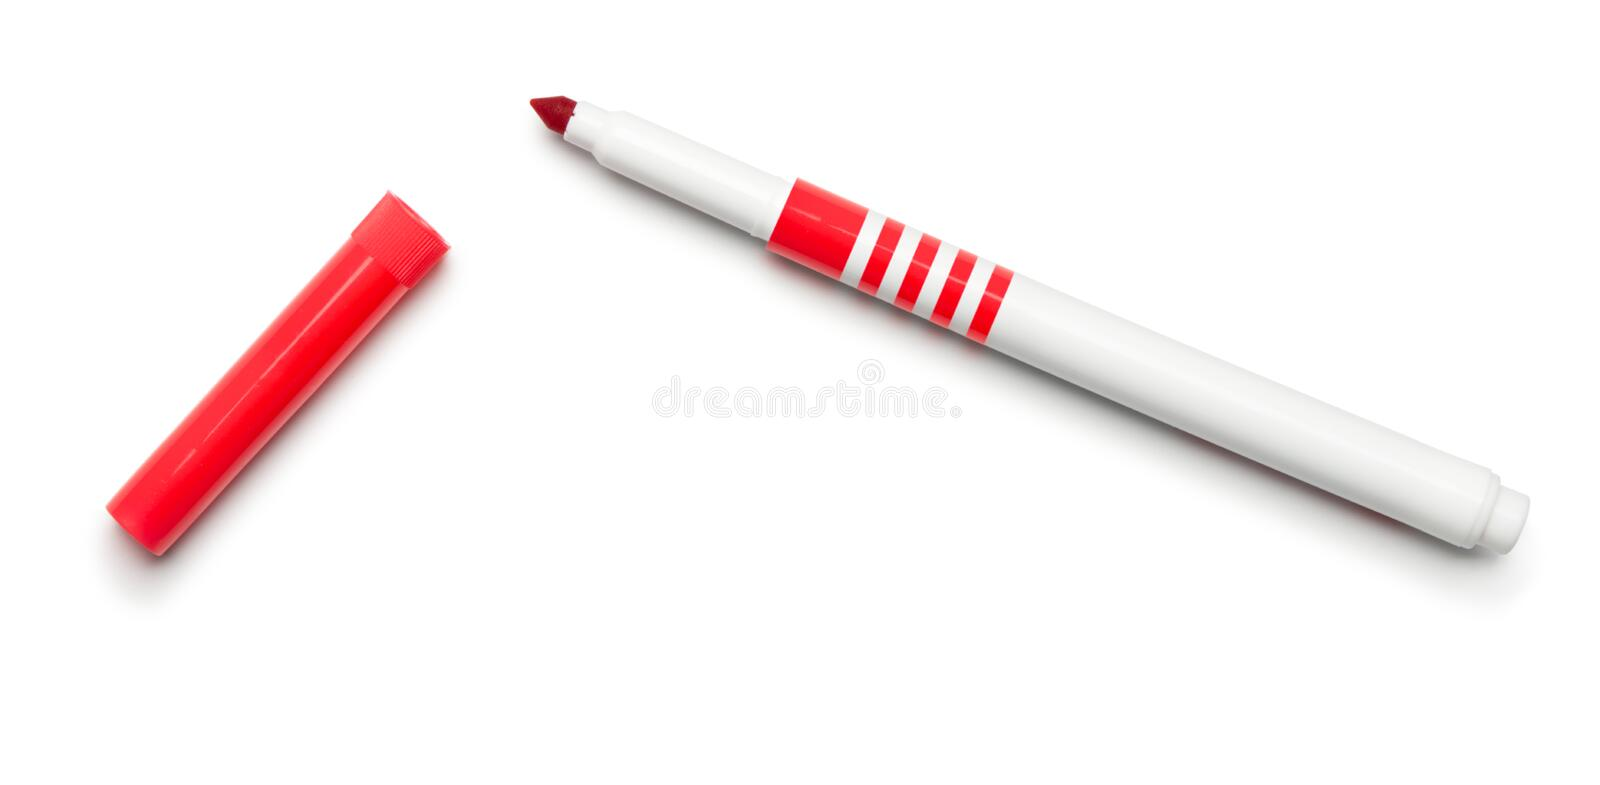 Putting Down the Red Pen